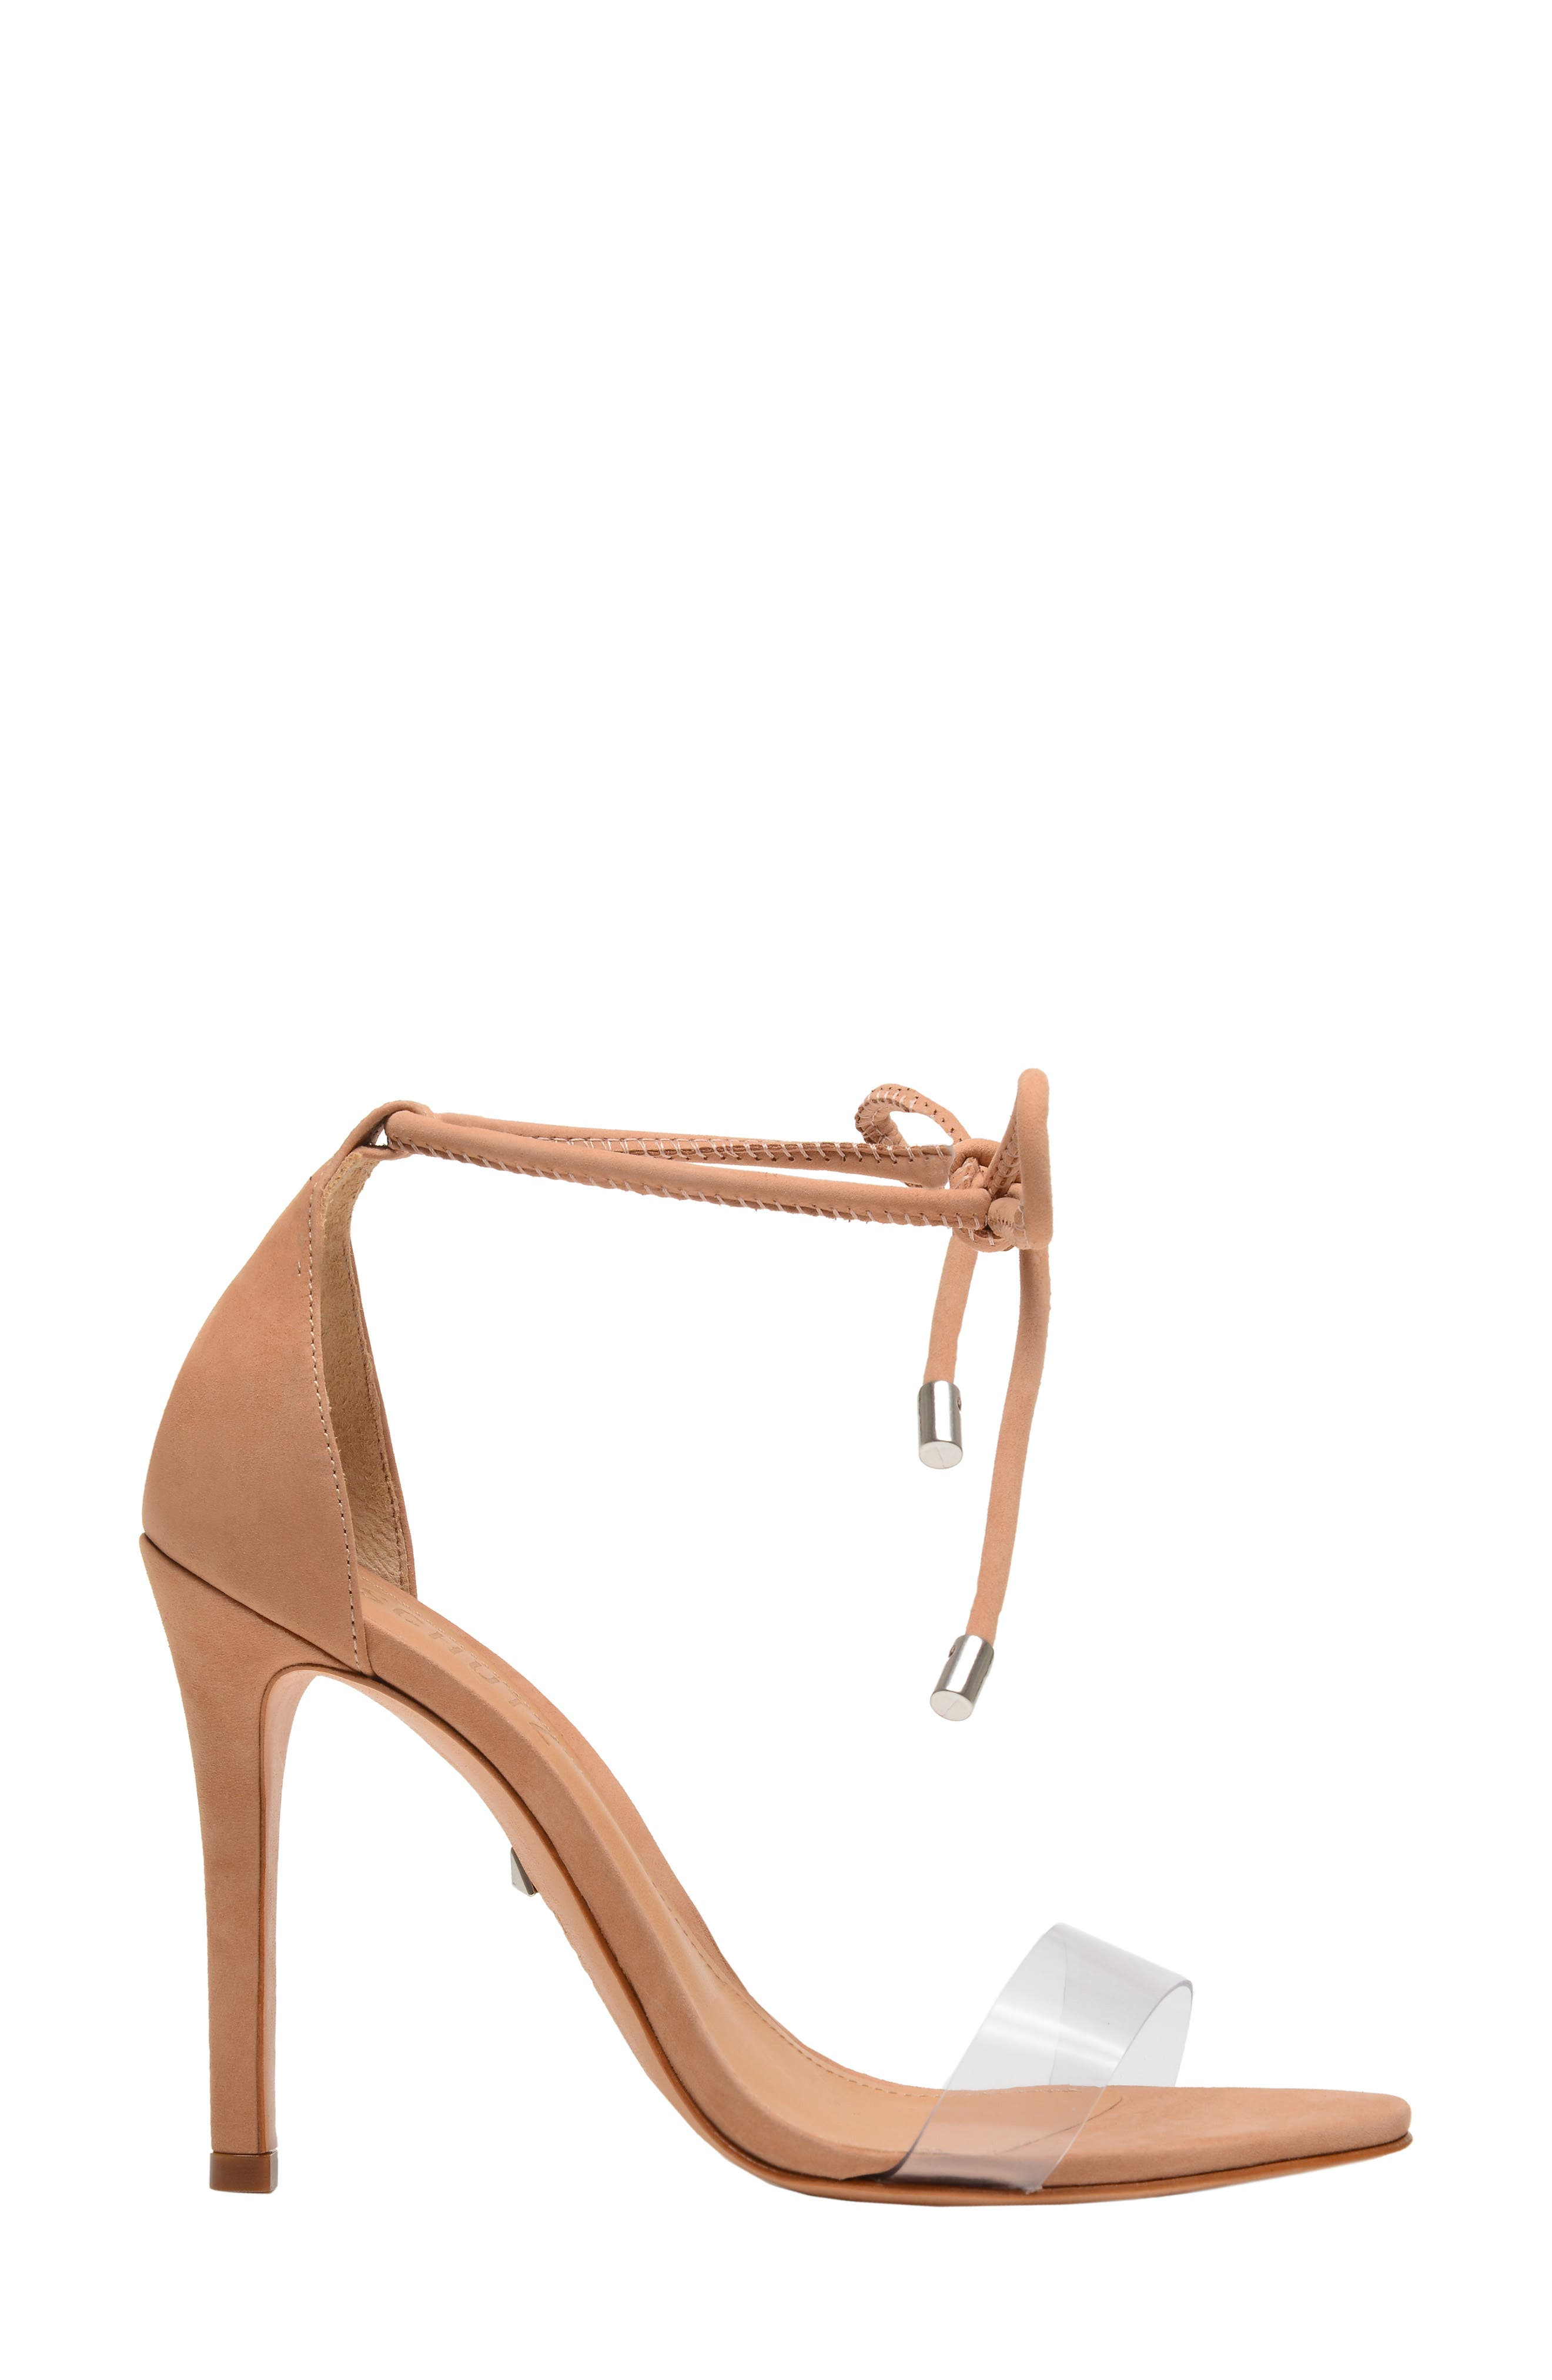 Shutz Monique Ankle Tie Sandal,                             Alternate thumbnail 3, color,                             TRANSPARENT/ HONEY BEIGE